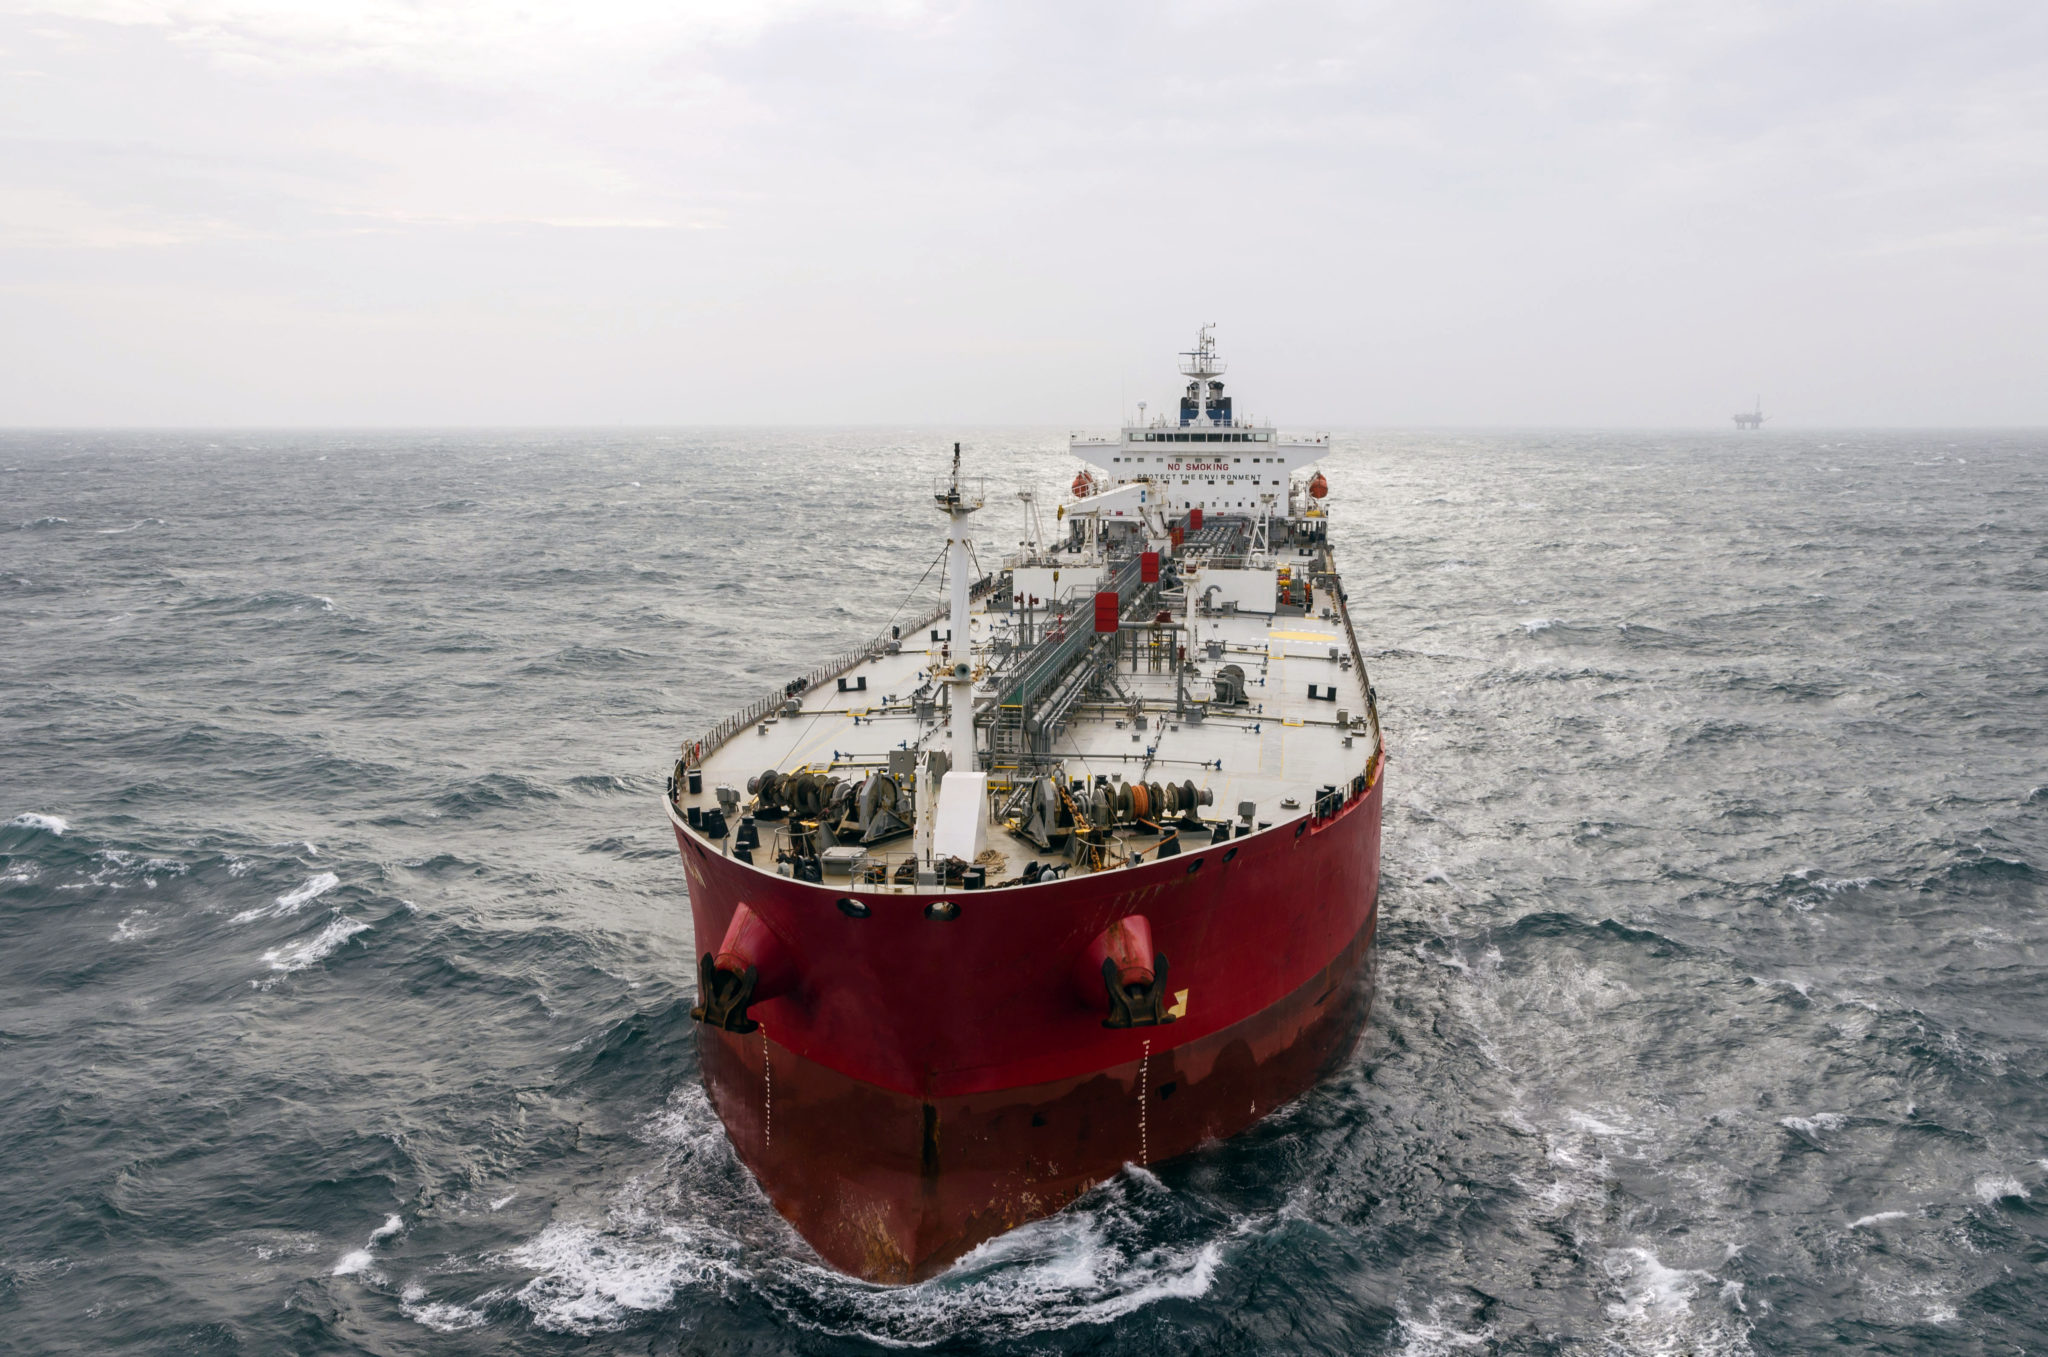 Drones successfully tested to inspect maritime assets